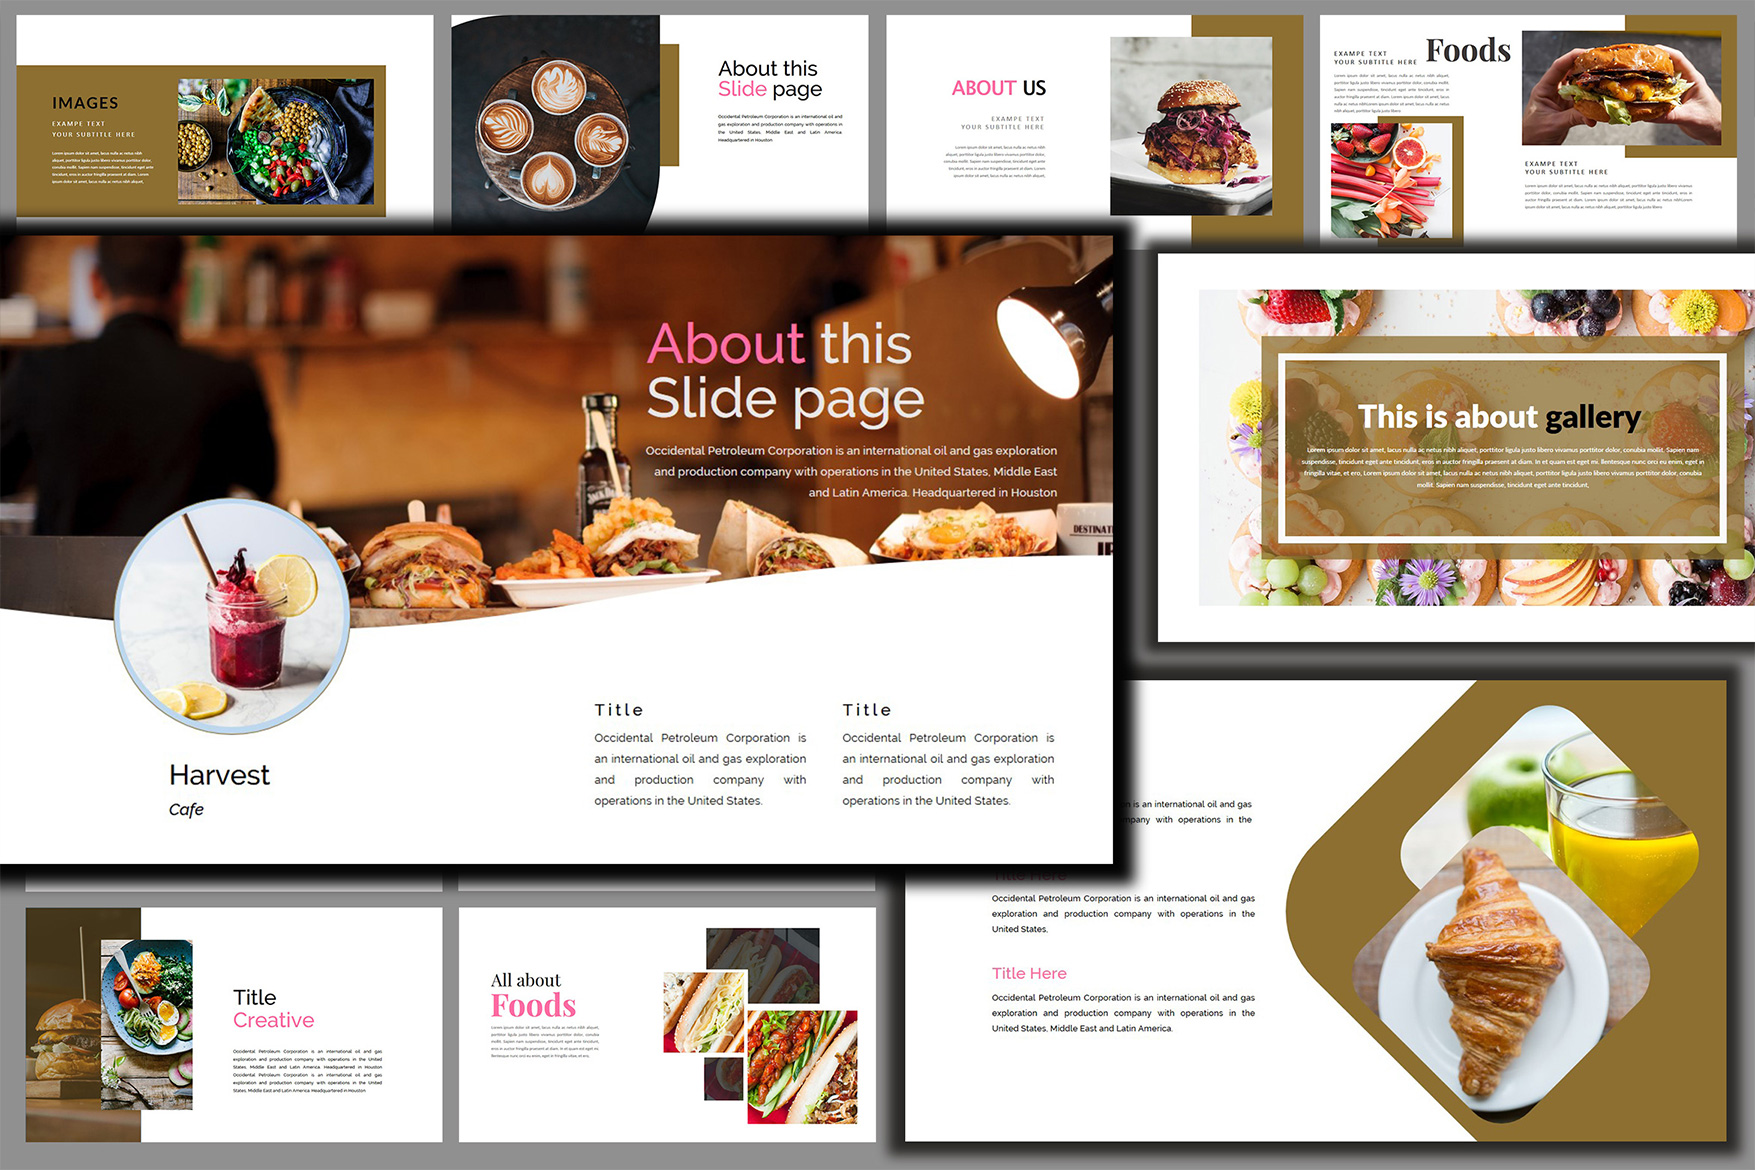 Delicious Food - Powerpoint Template example image 2